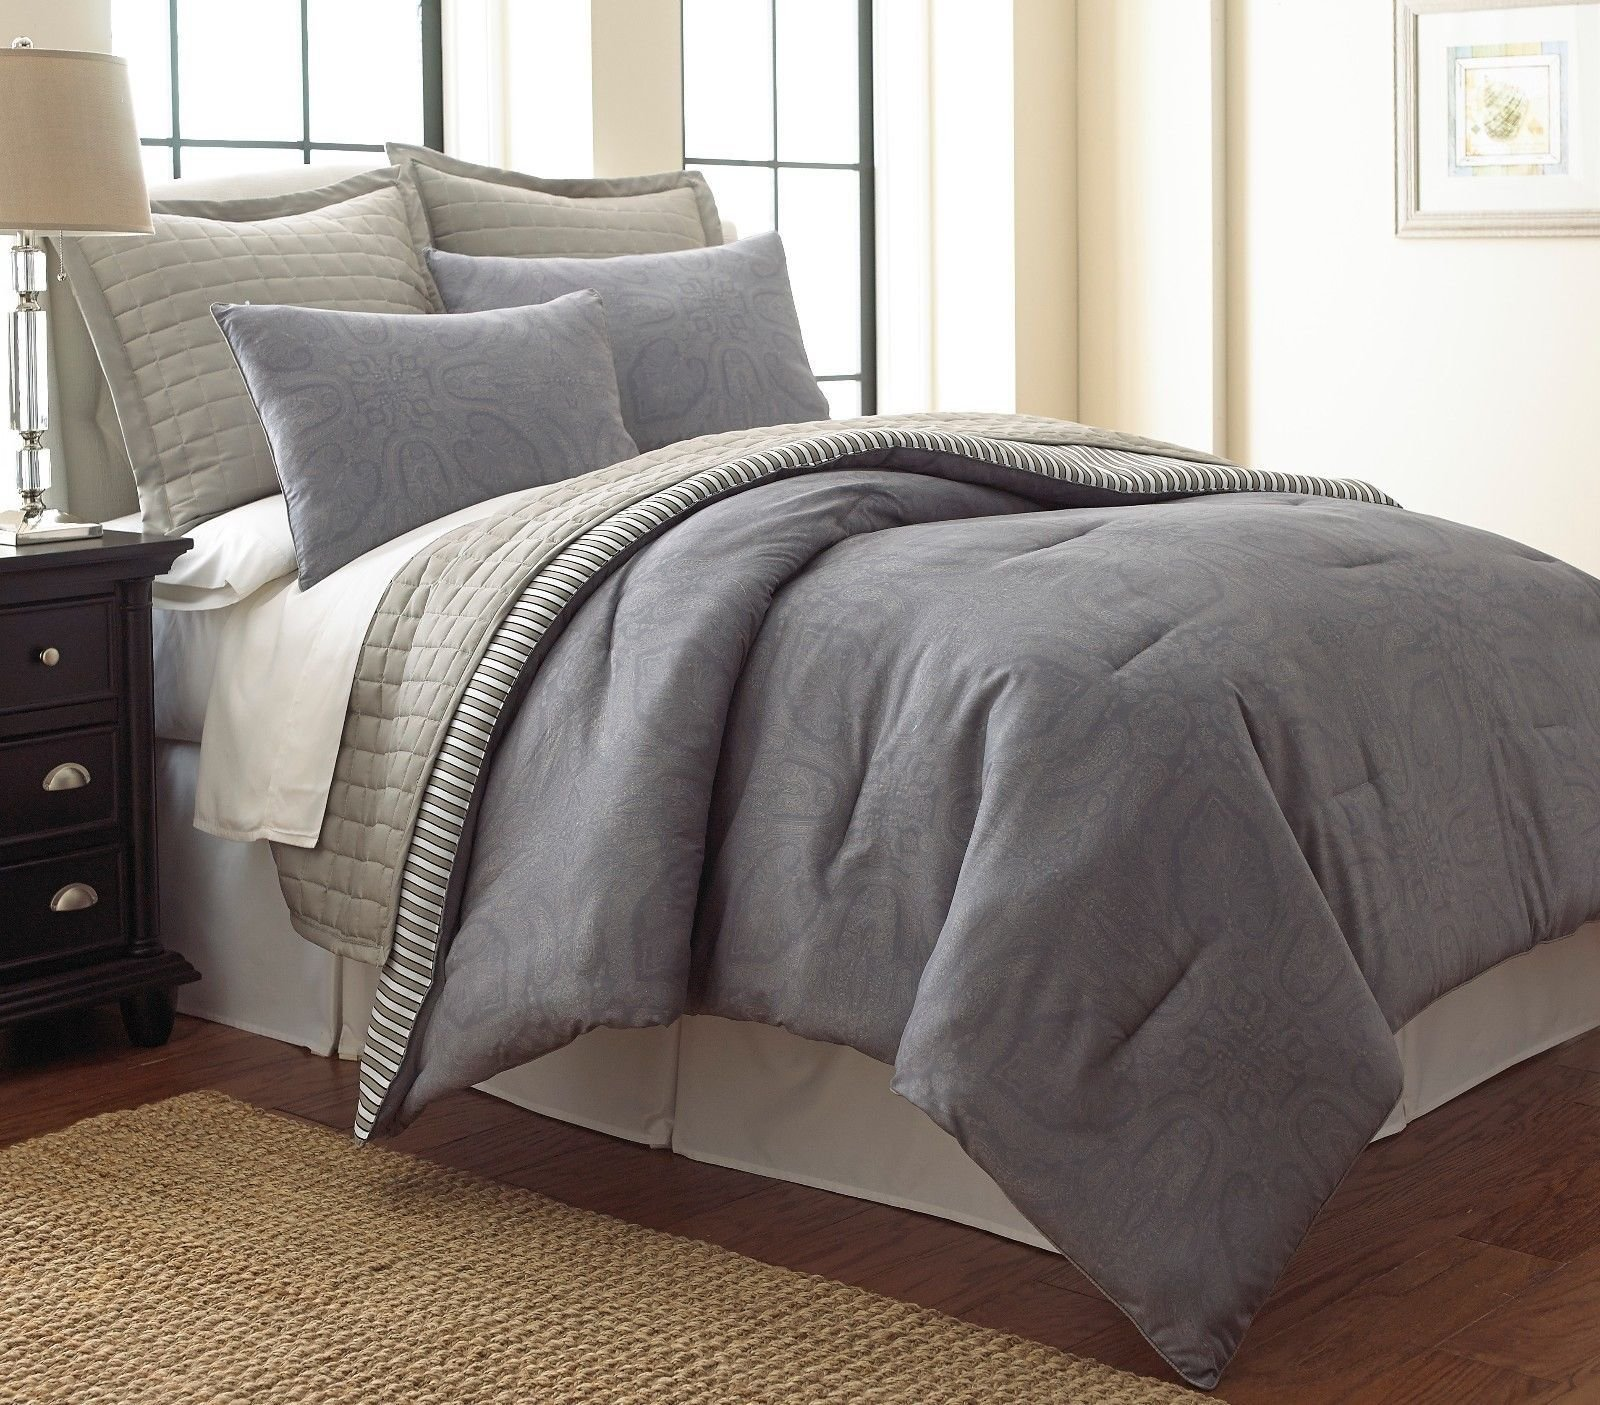 Best New 6 Piece Queen Size Comforter Set Bedroom Bed In A Bag With Pictures